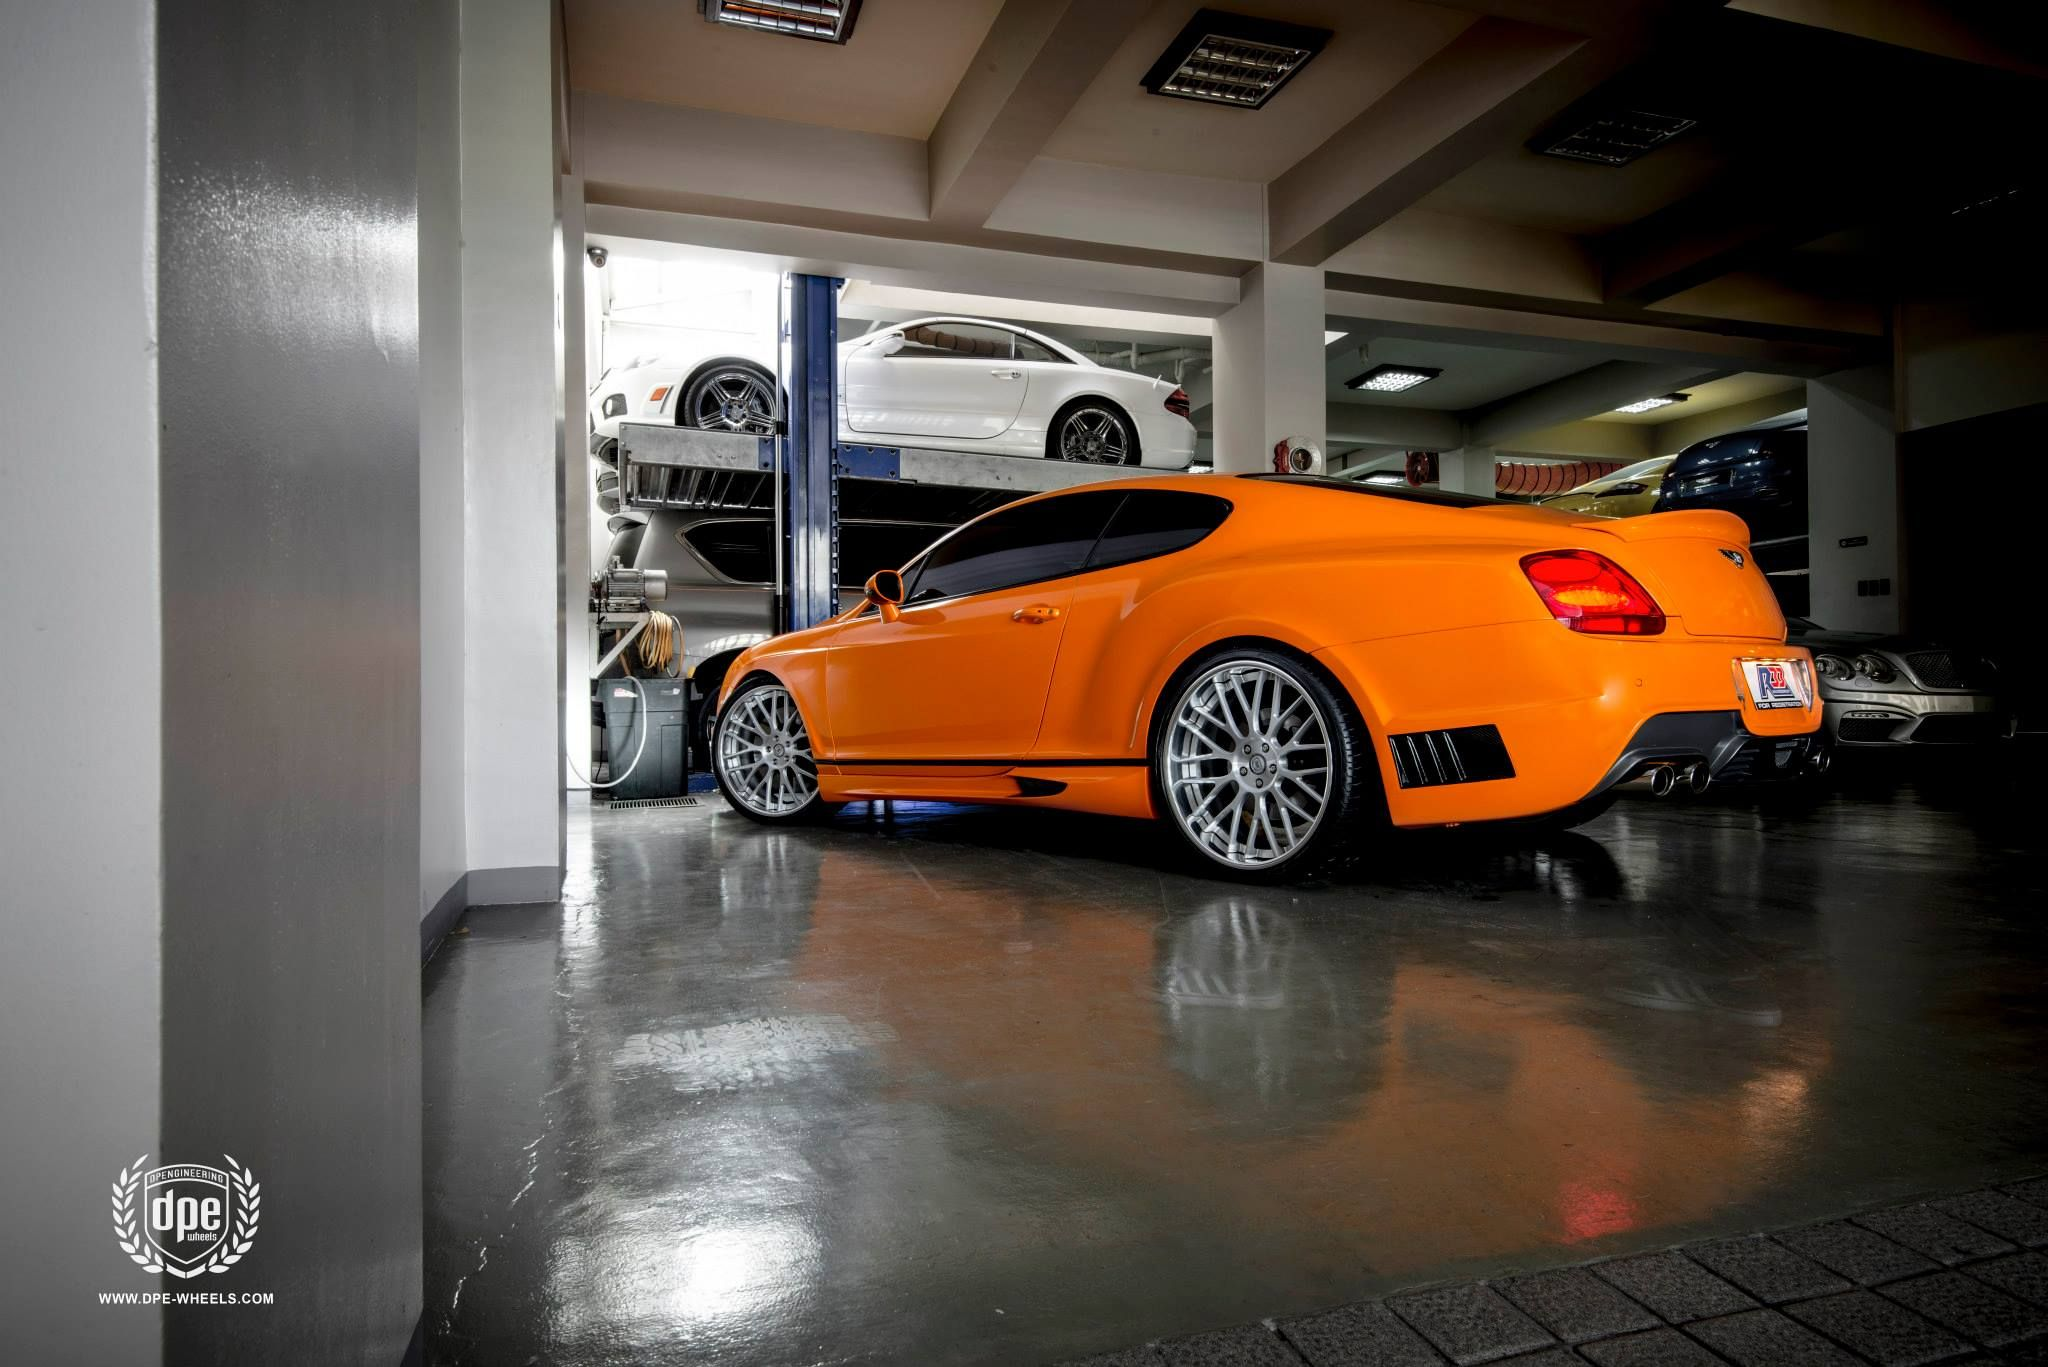 Philippines Locally Made Supercars Photos And Video Enblow